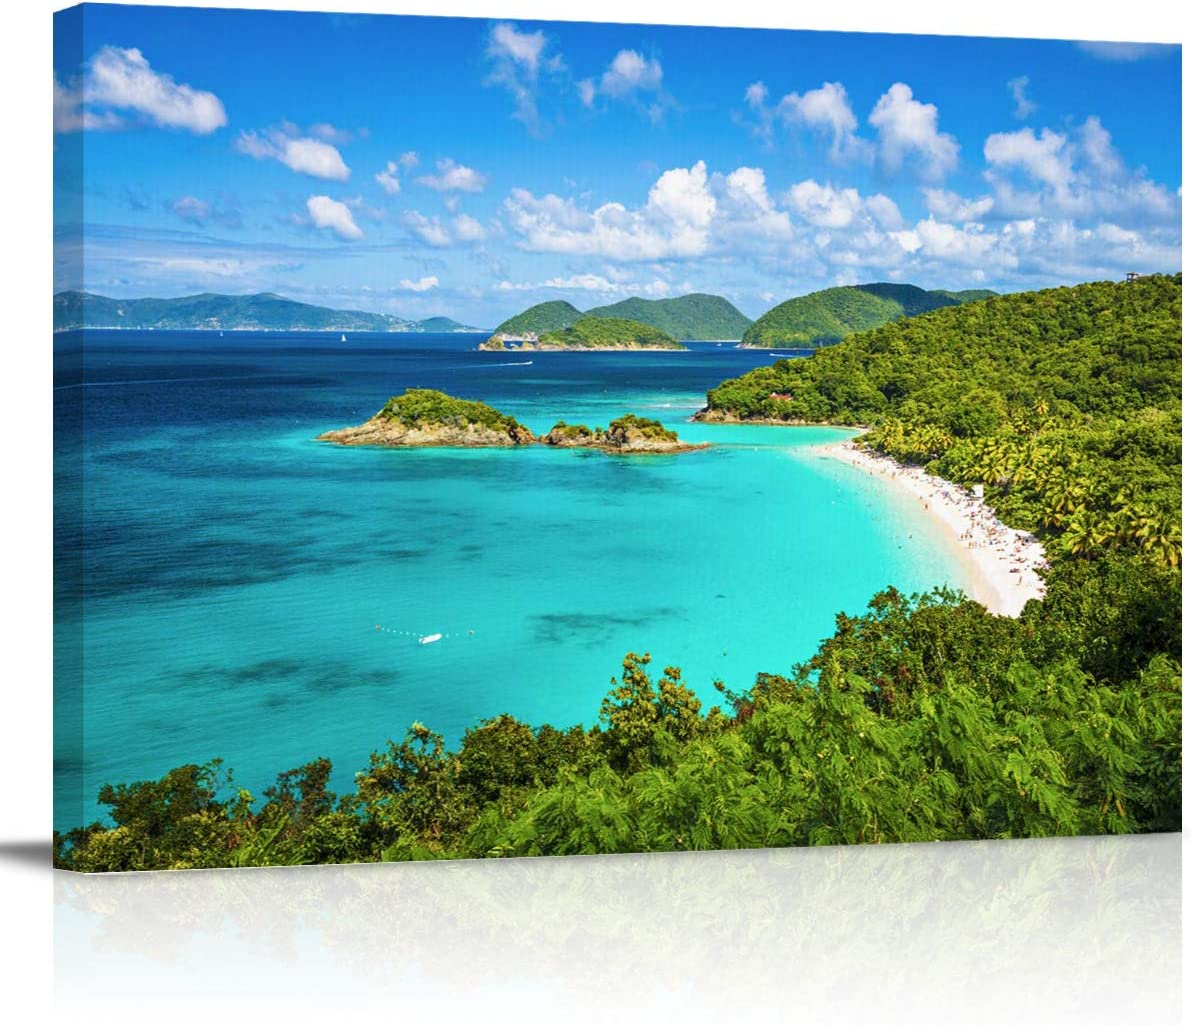 Canvas Wall Art Print Artwork Wall Art Decor United States Virgin Islands Trubk Bay Blue Sea and White Clouds Stretched & Framed Artwork Prints Ready to Hang Home Decor Wall Decor- 24''x16''